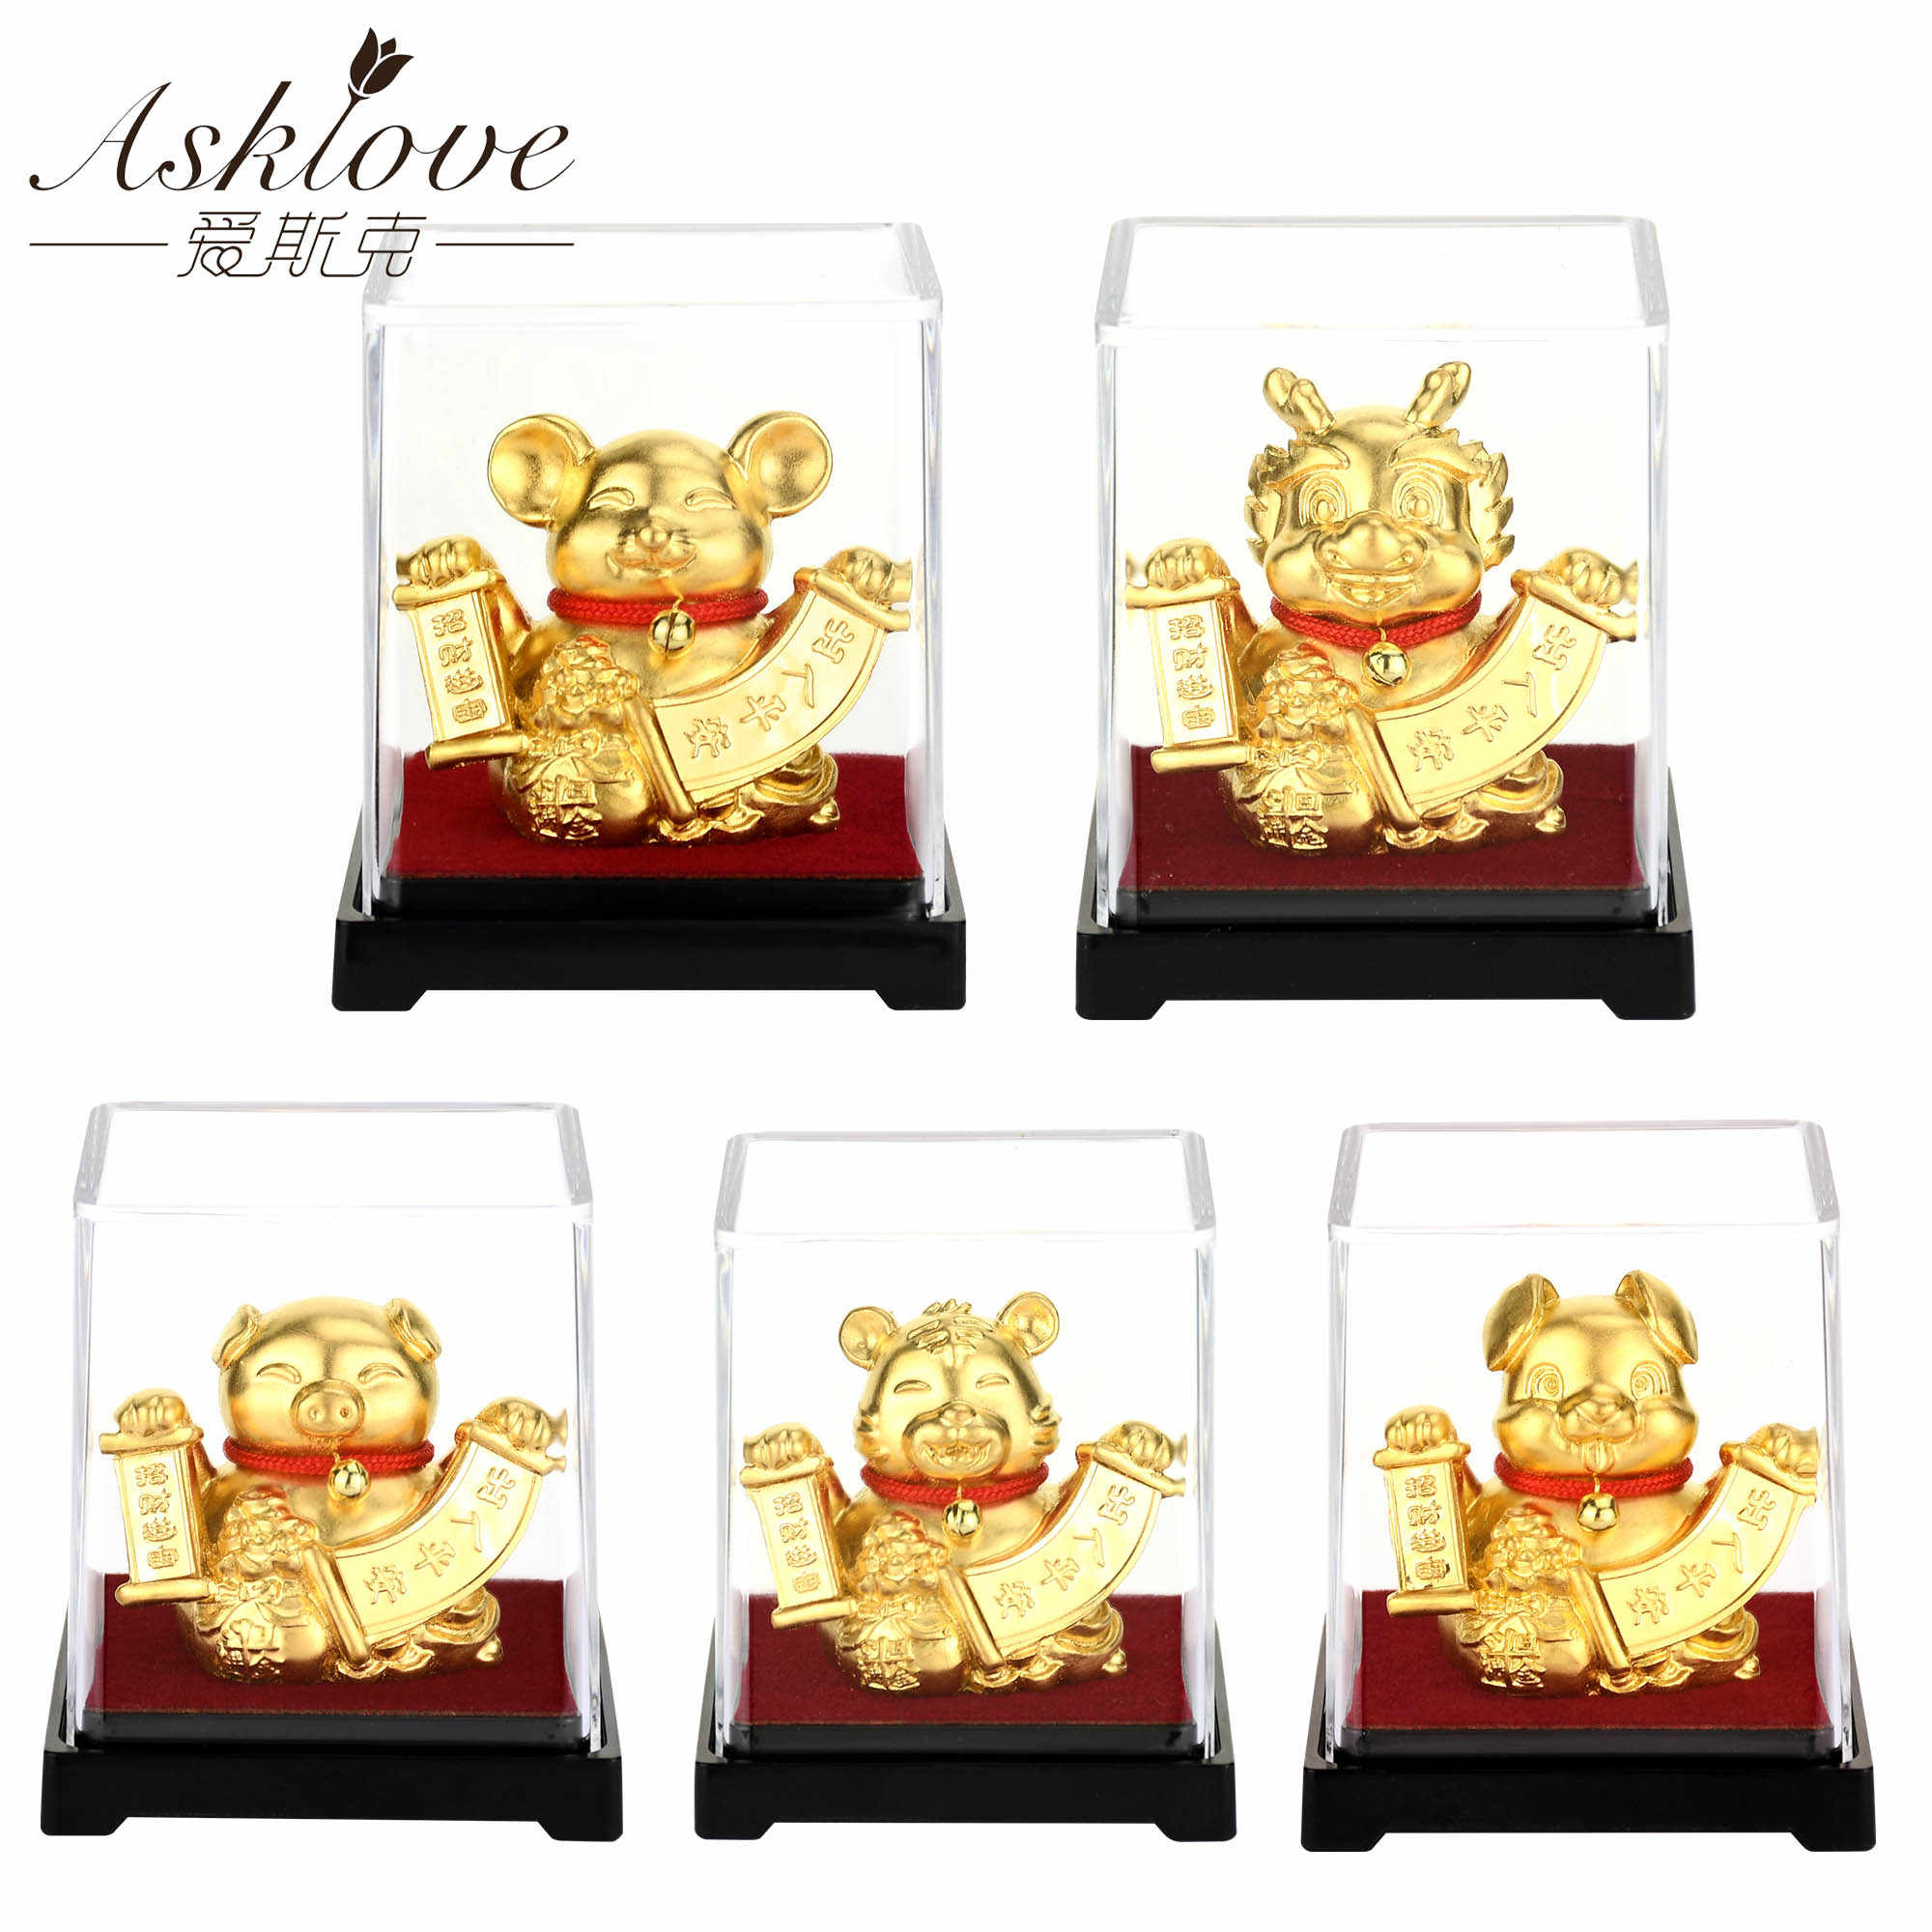 Chinese Zodiac Verzamelen Rijkdom Ornamenten 24 K Goud Folie Fengshui Decor Dragon/Rat/Varken/Aap Auto Geluk ambachten Home Office Decor